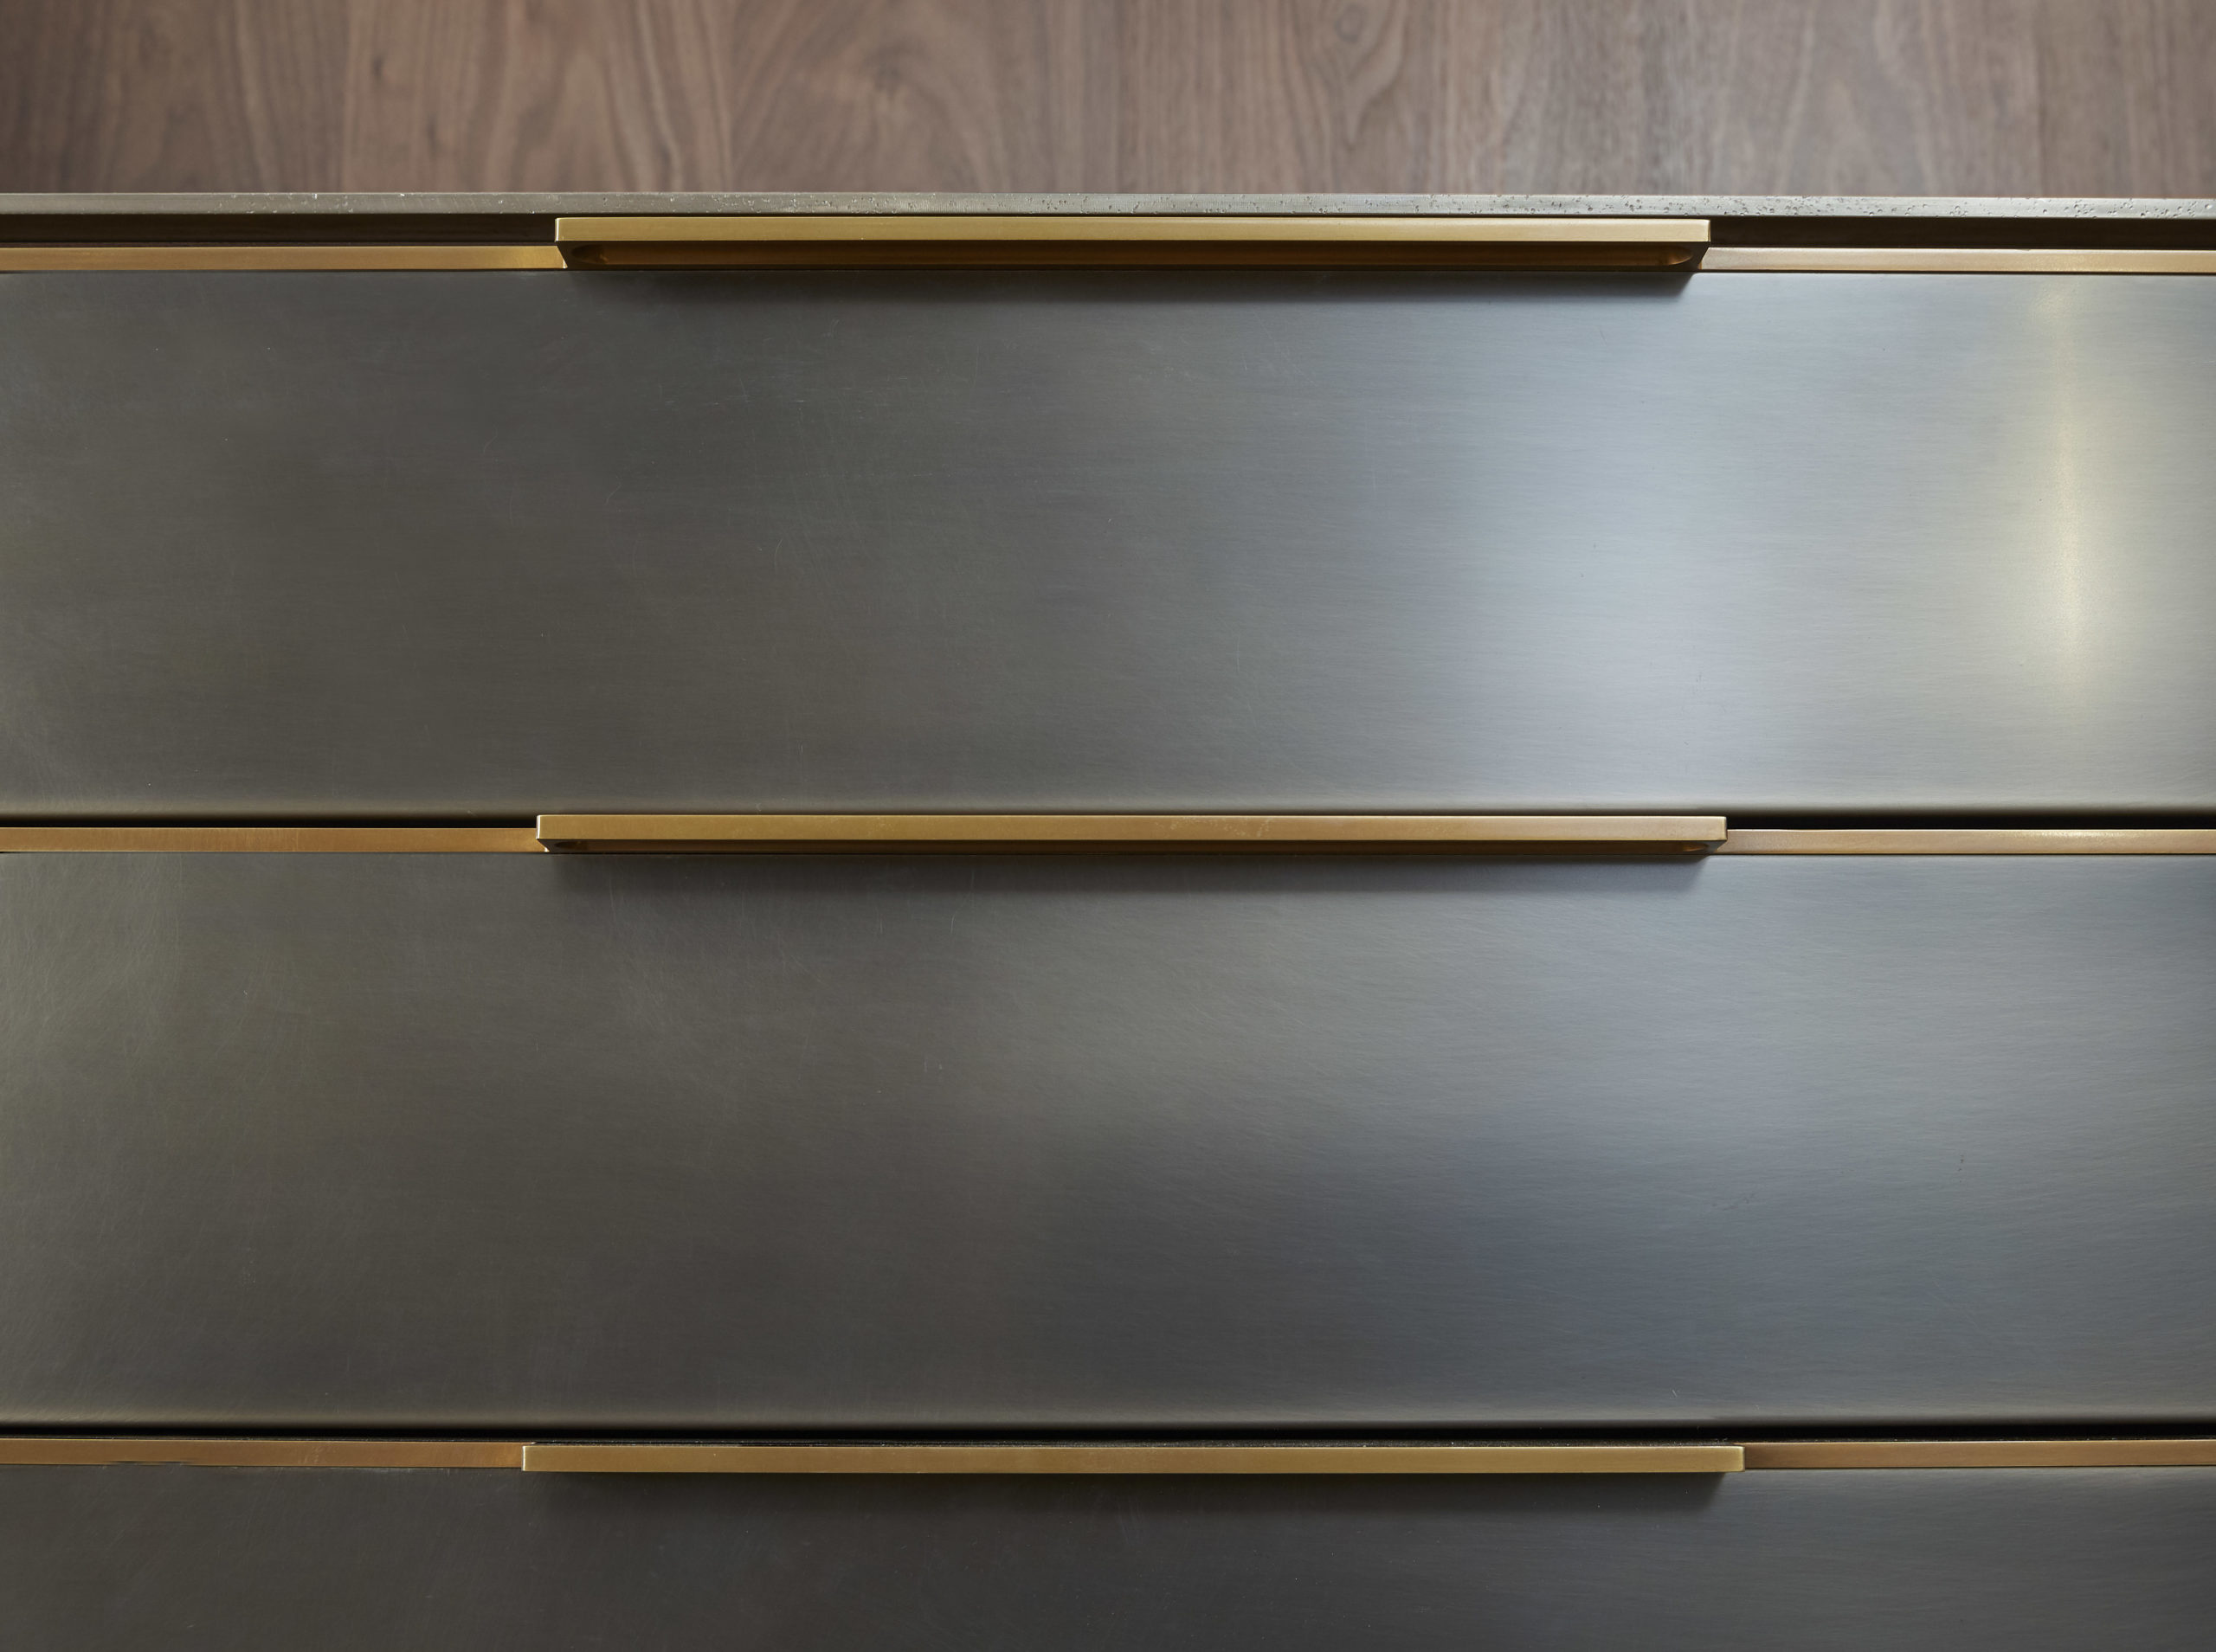 amuneal_products_WNWN_NYDC_5Blackened-Stainless-Bar-Detail-Drawer-Fronts_nycshowroom-scaled-1